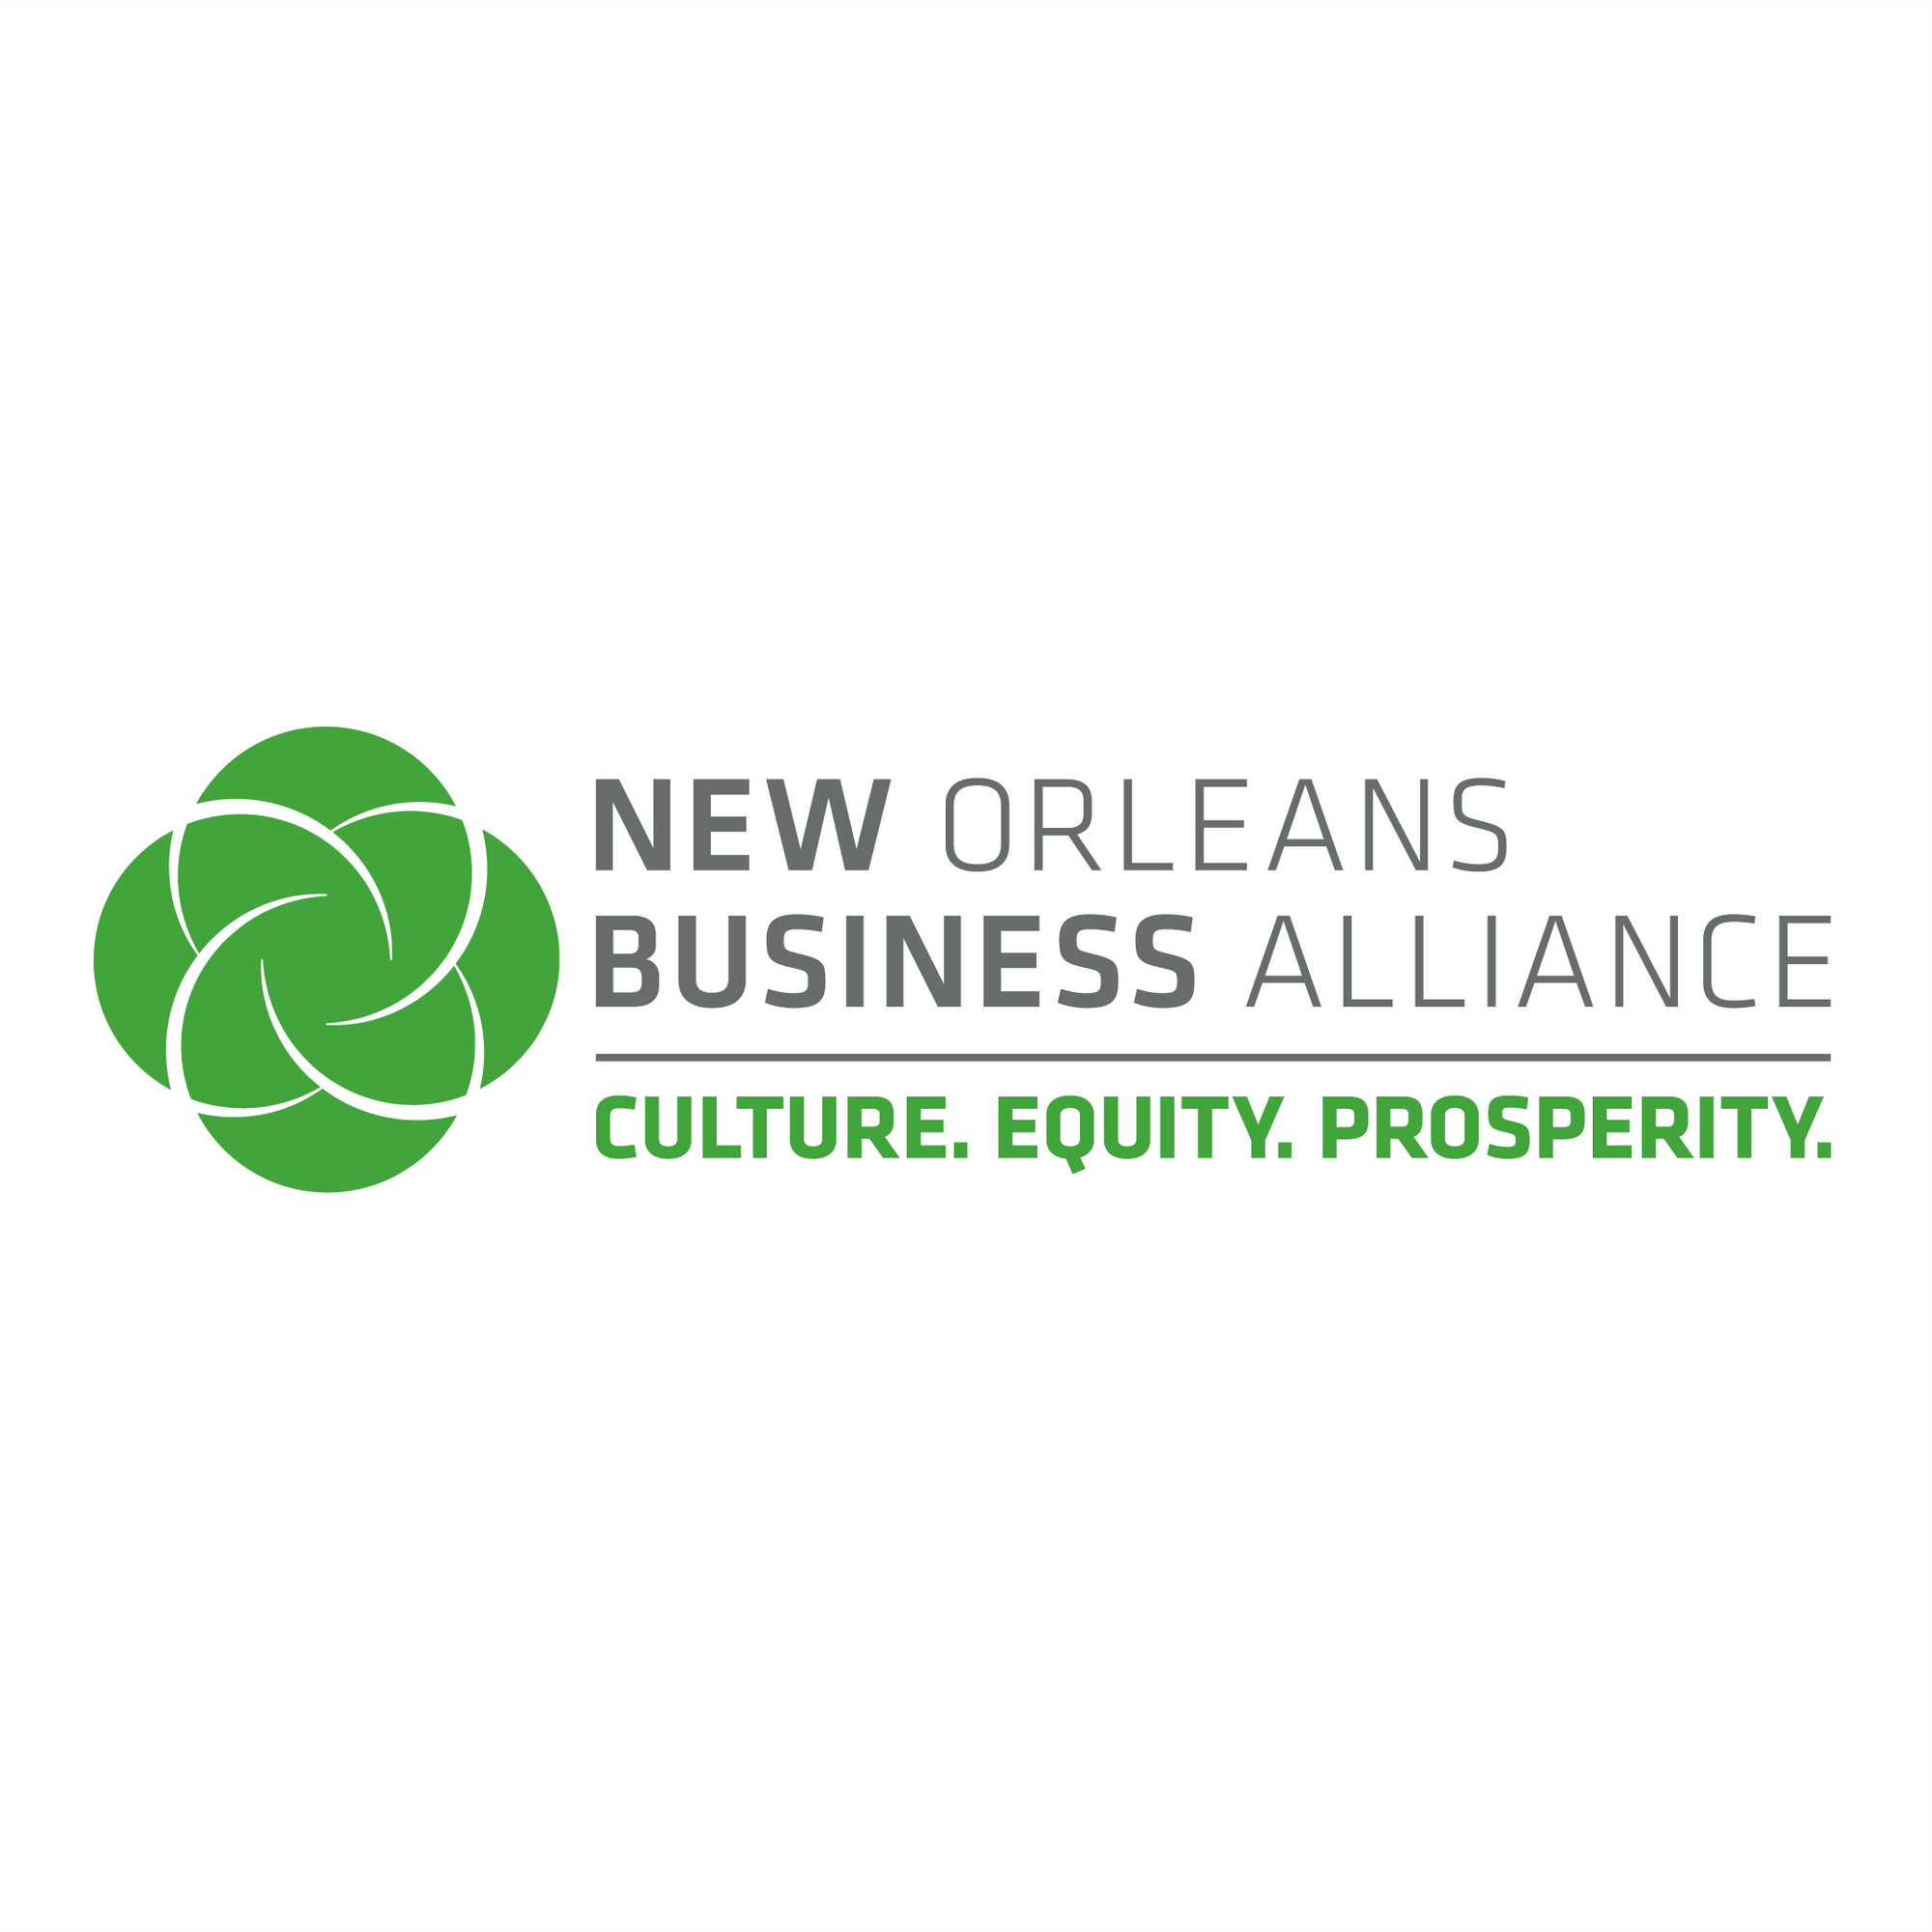 New Orleans Business Alliance